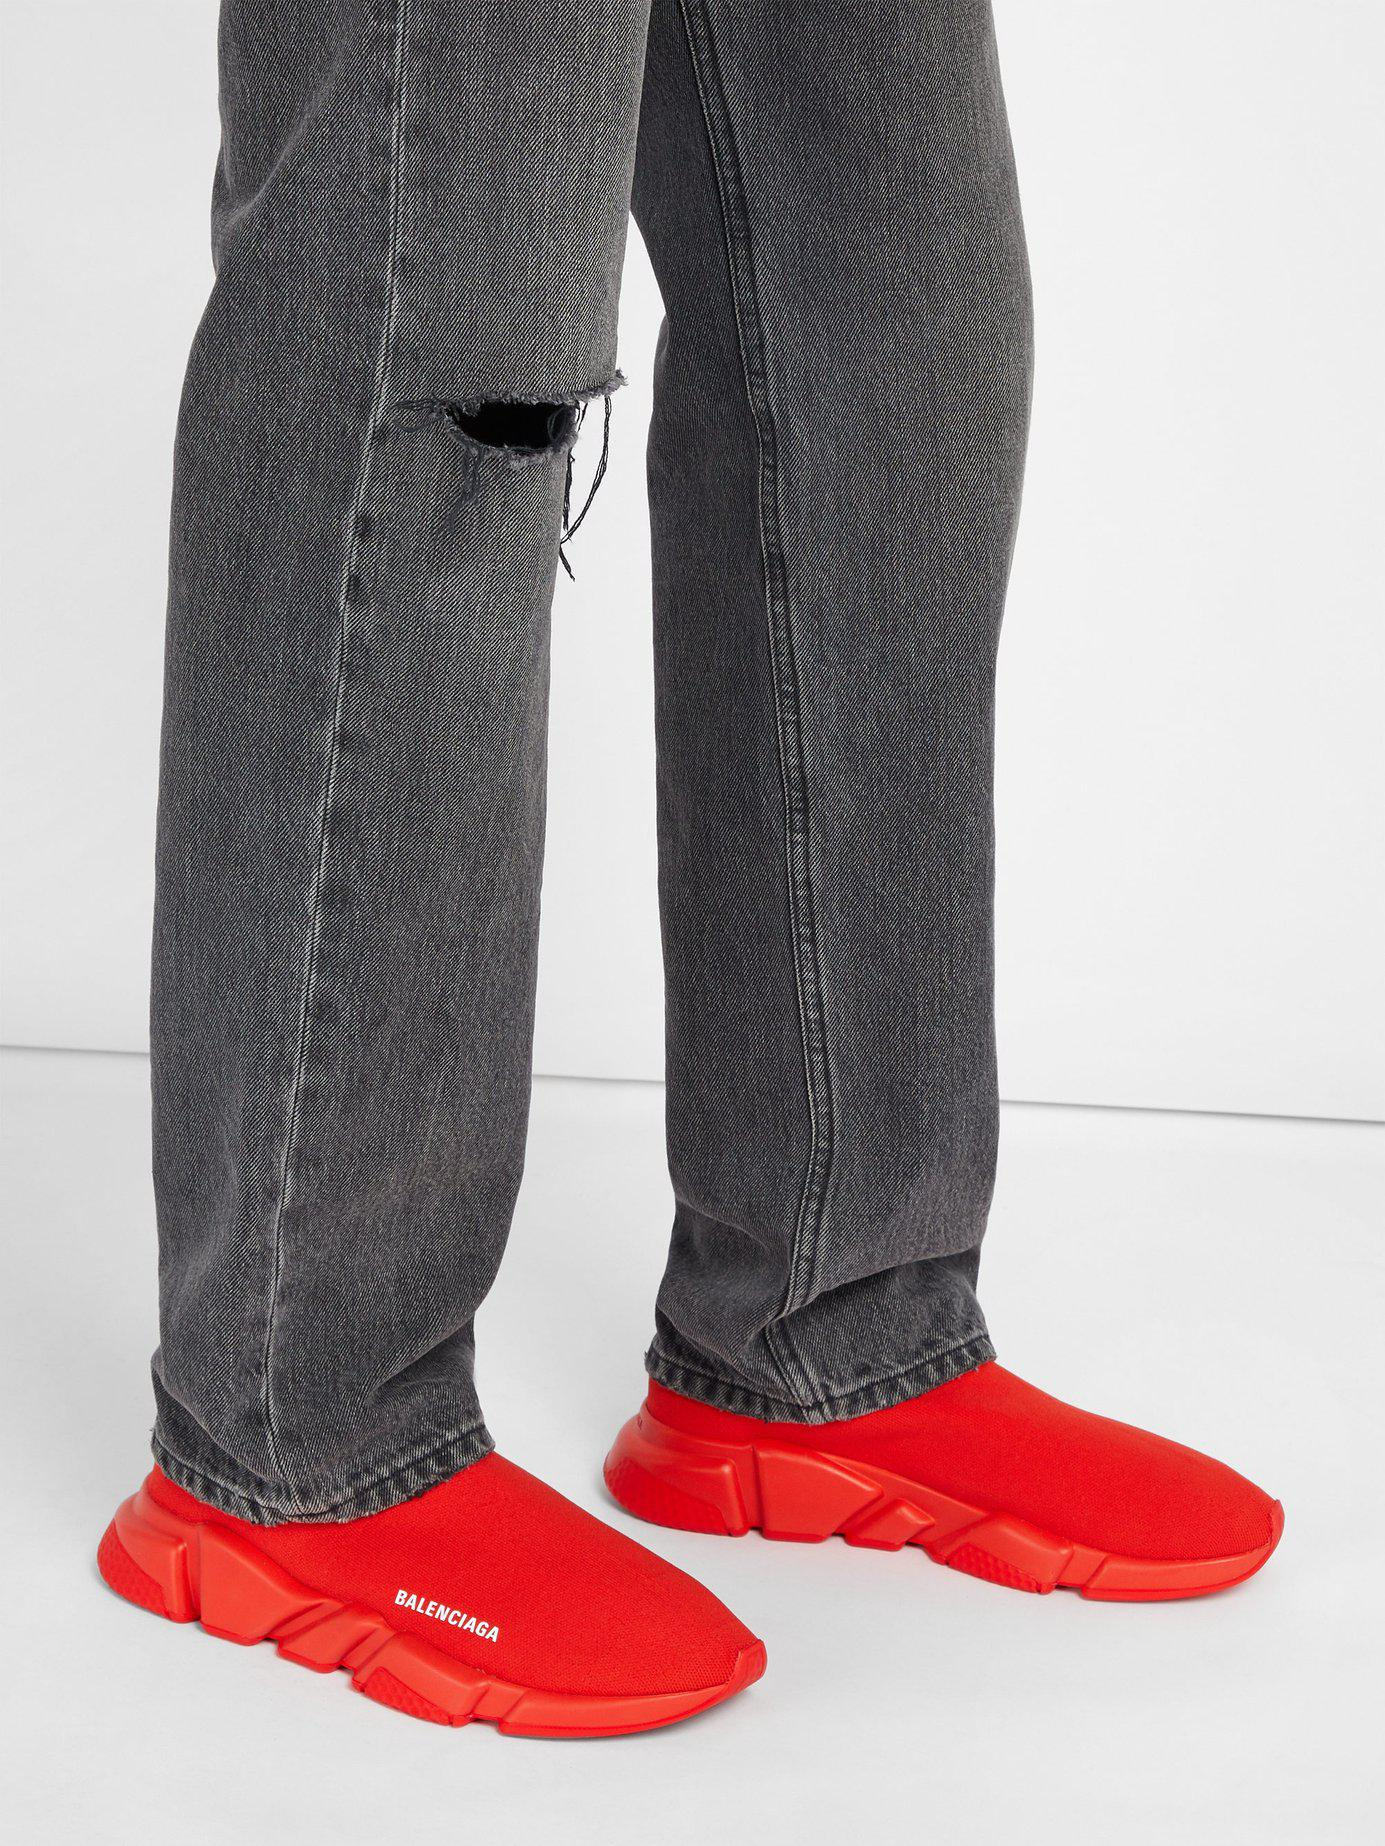 767e8d37f48b Lyst - Balenciaga Speed Sock Trainers in Red for Men - Save 20%